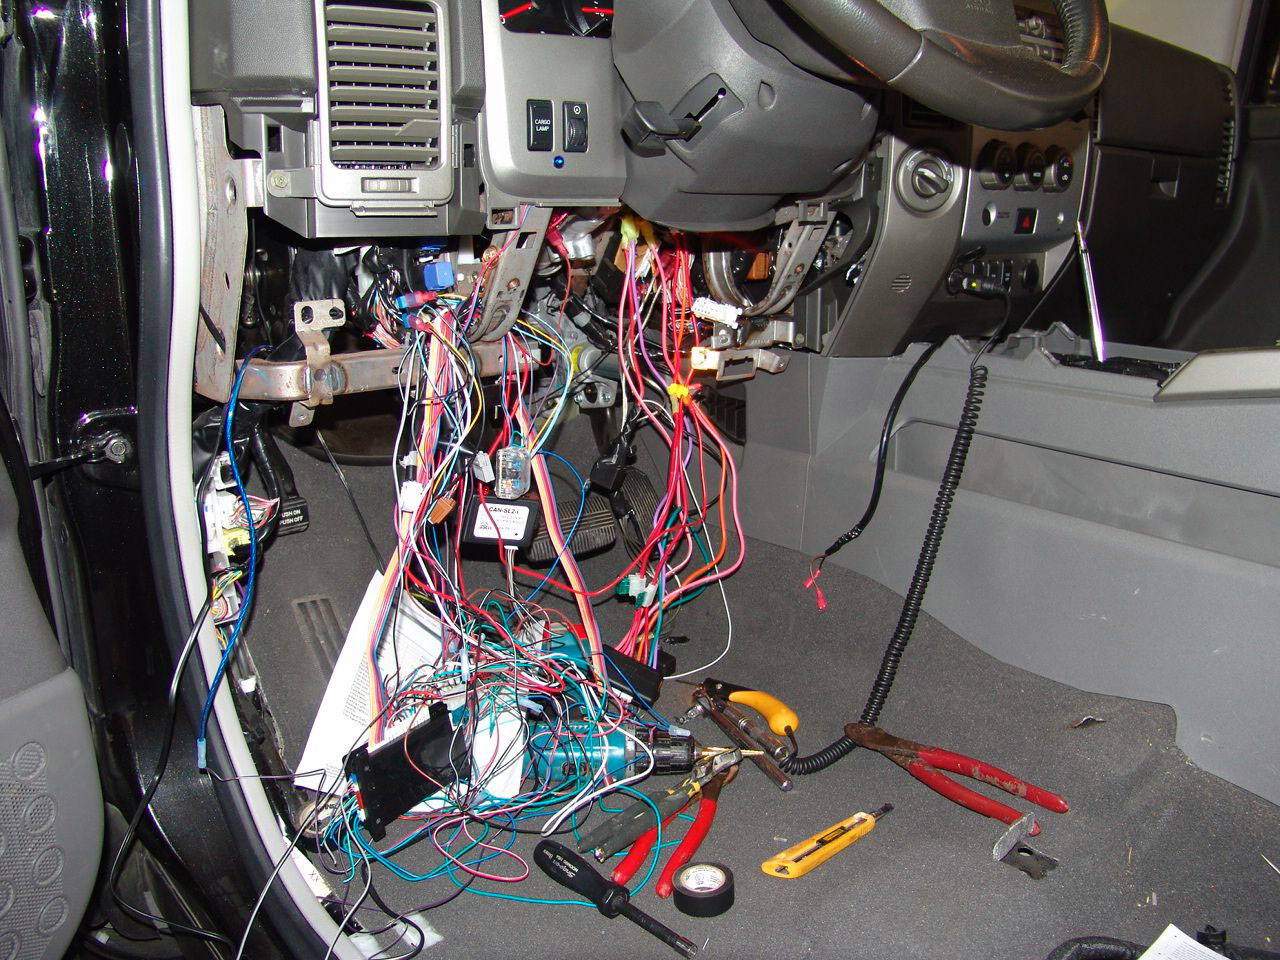 viper remote start wiring diagram viper wiring diagrams